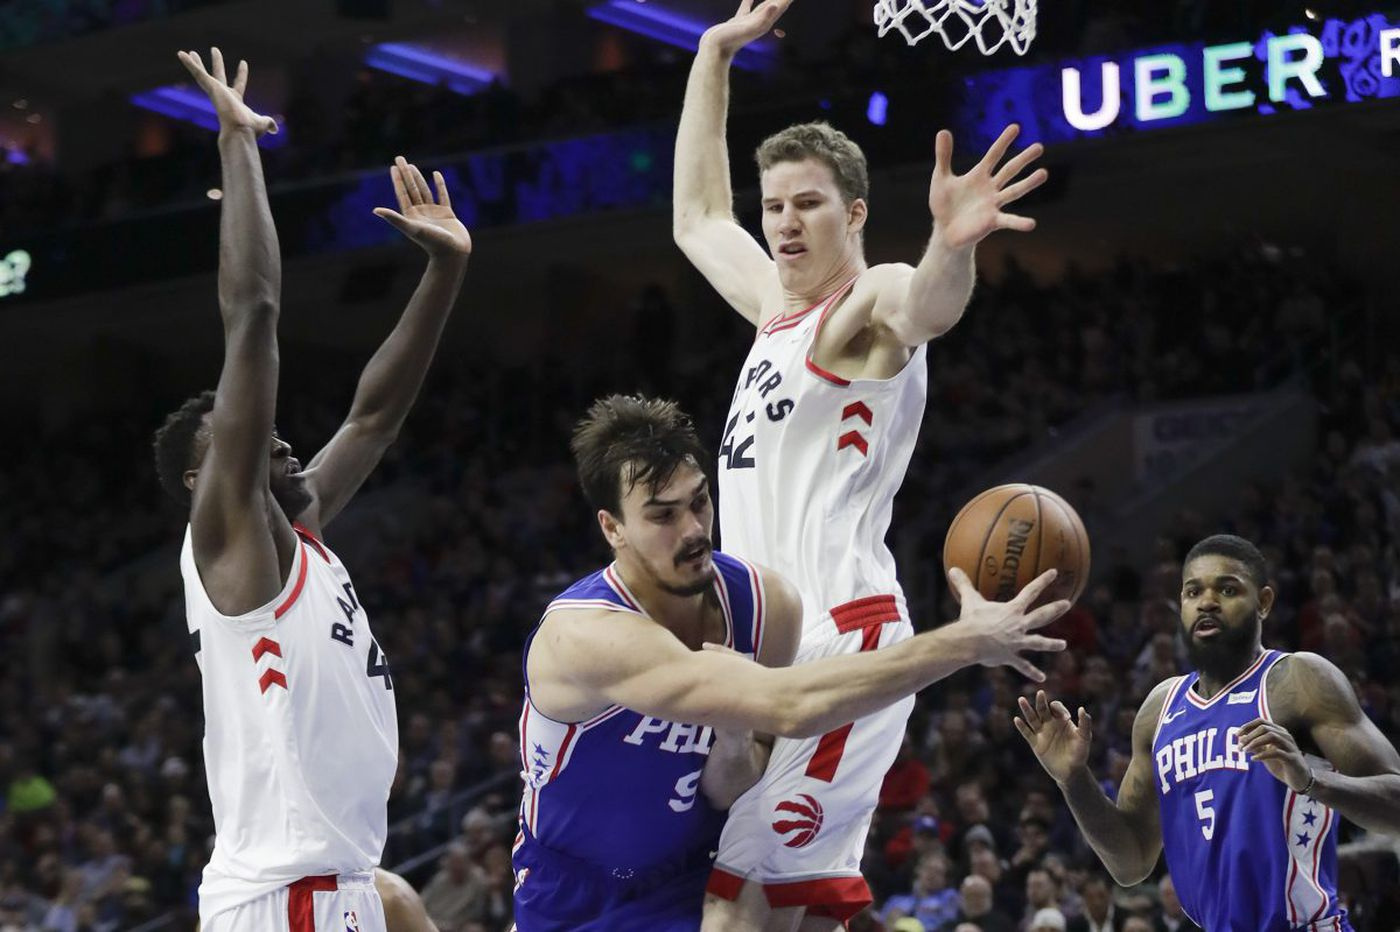 Sixers-Nuggets: Looking for a shorthanded win in Denver